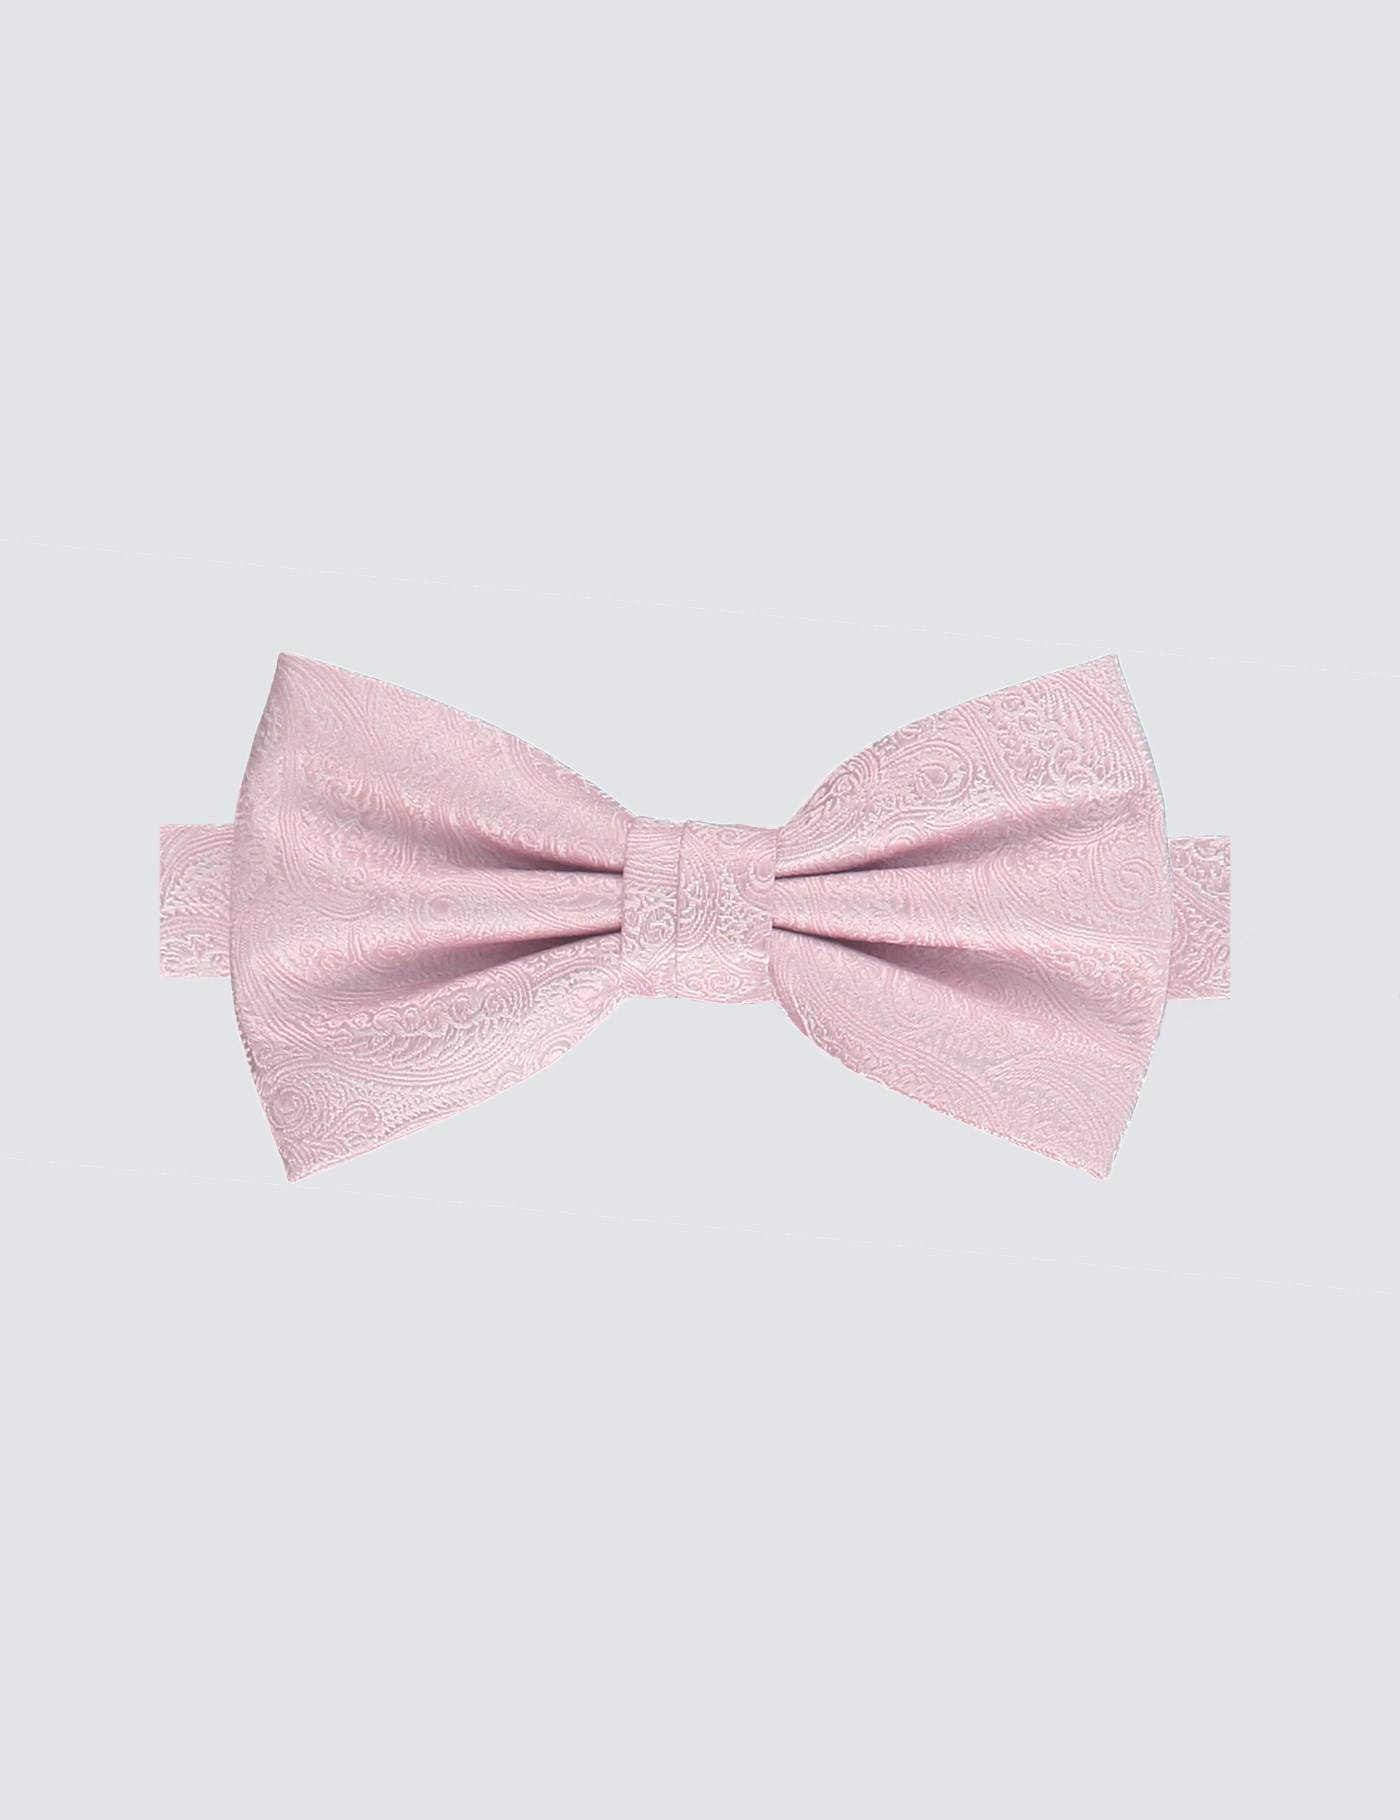 Hawes & Curtis Men's Paisley Ready Tied Bow Tie in Light Pink 100% Silk